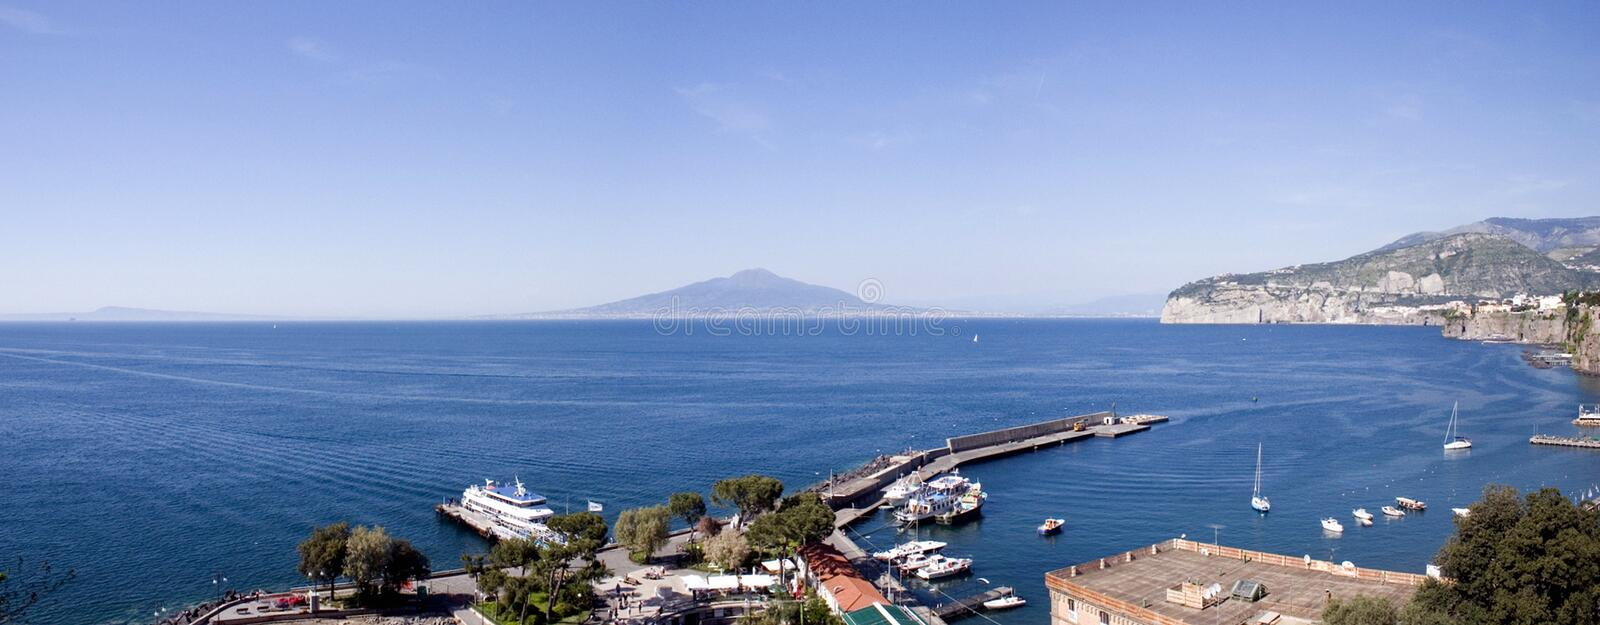 Naples view from the Port of Sorrento stock photo